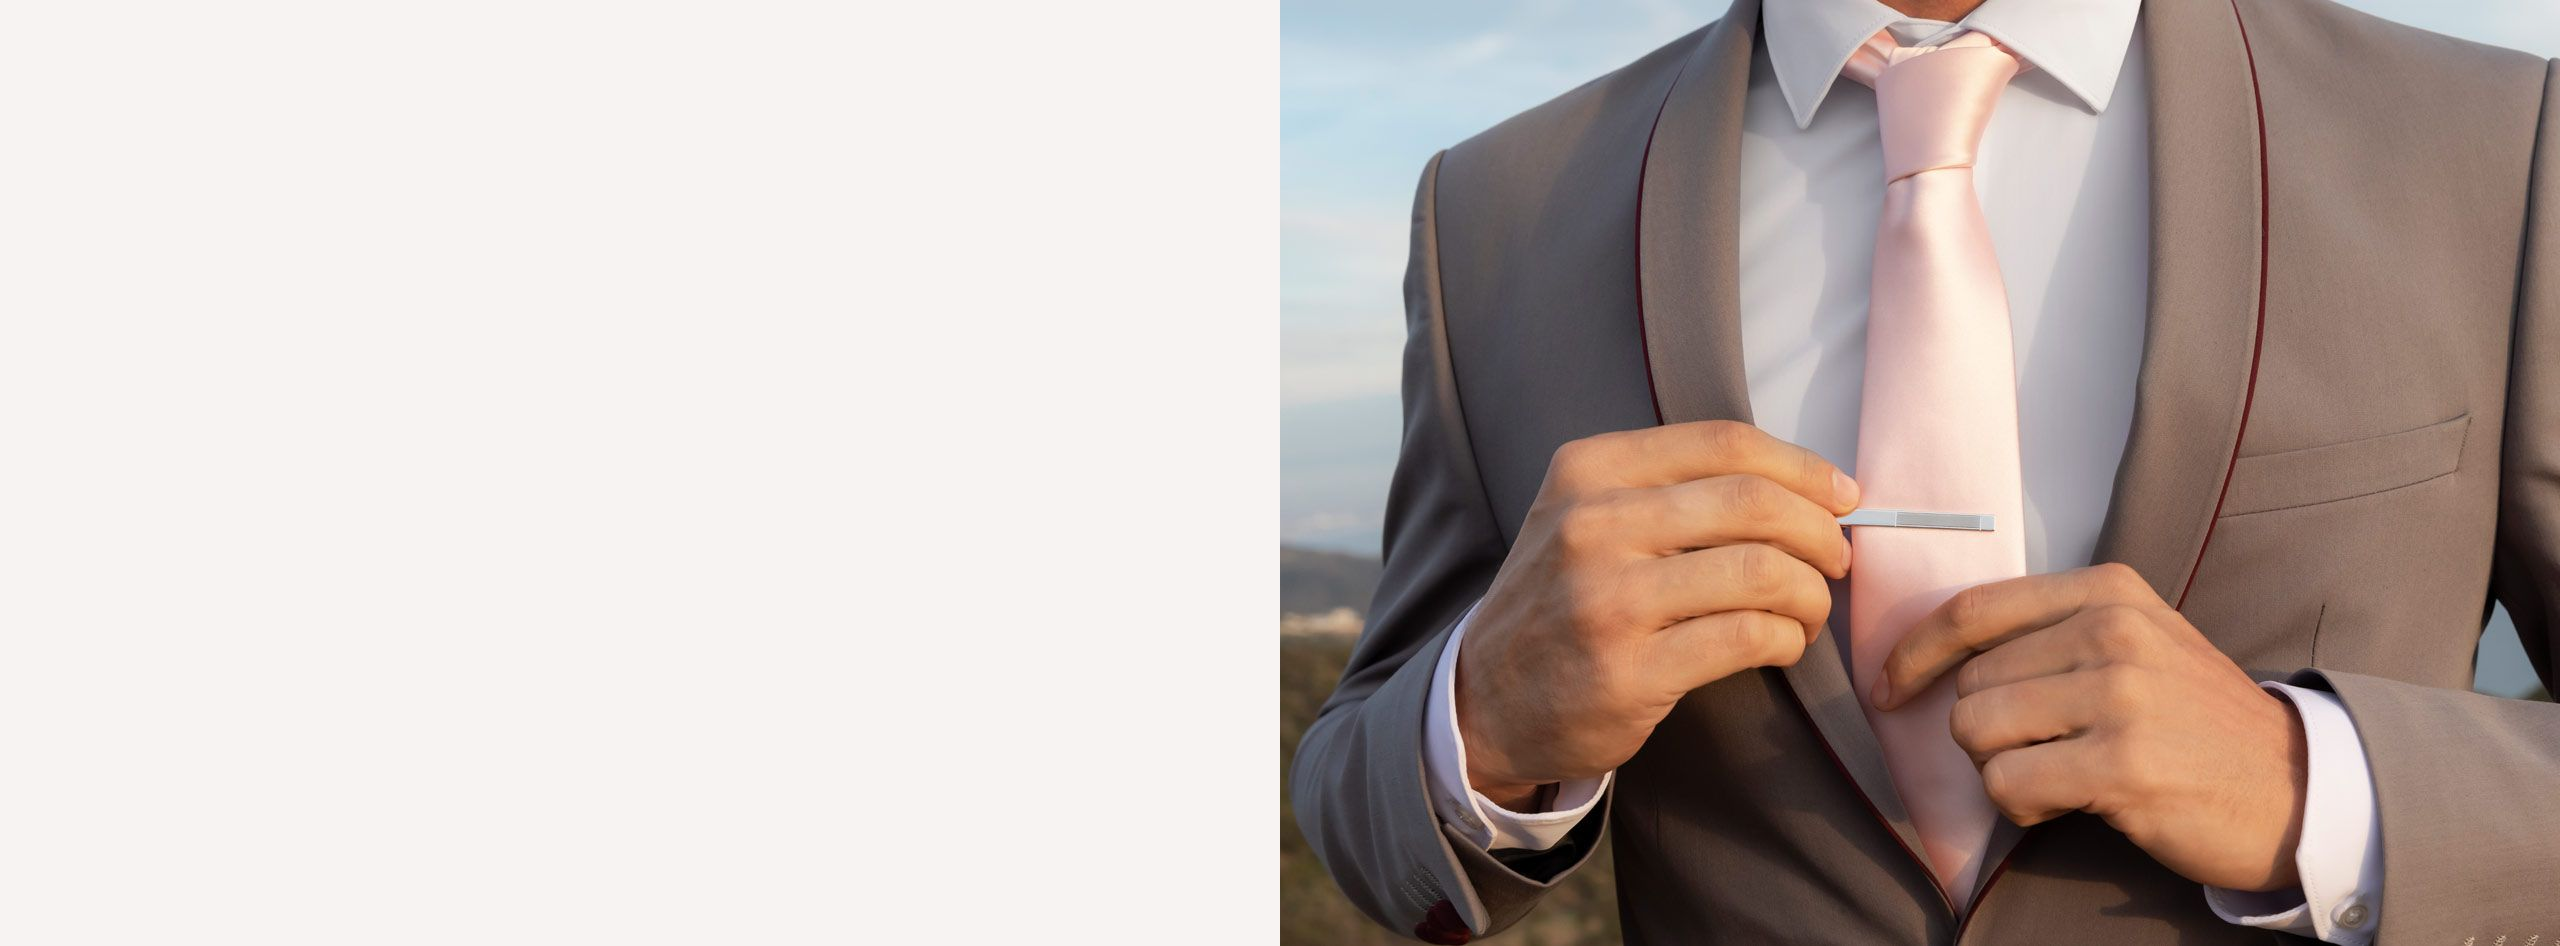 Close Up of Man Putting Silver Tie Clip on Tie